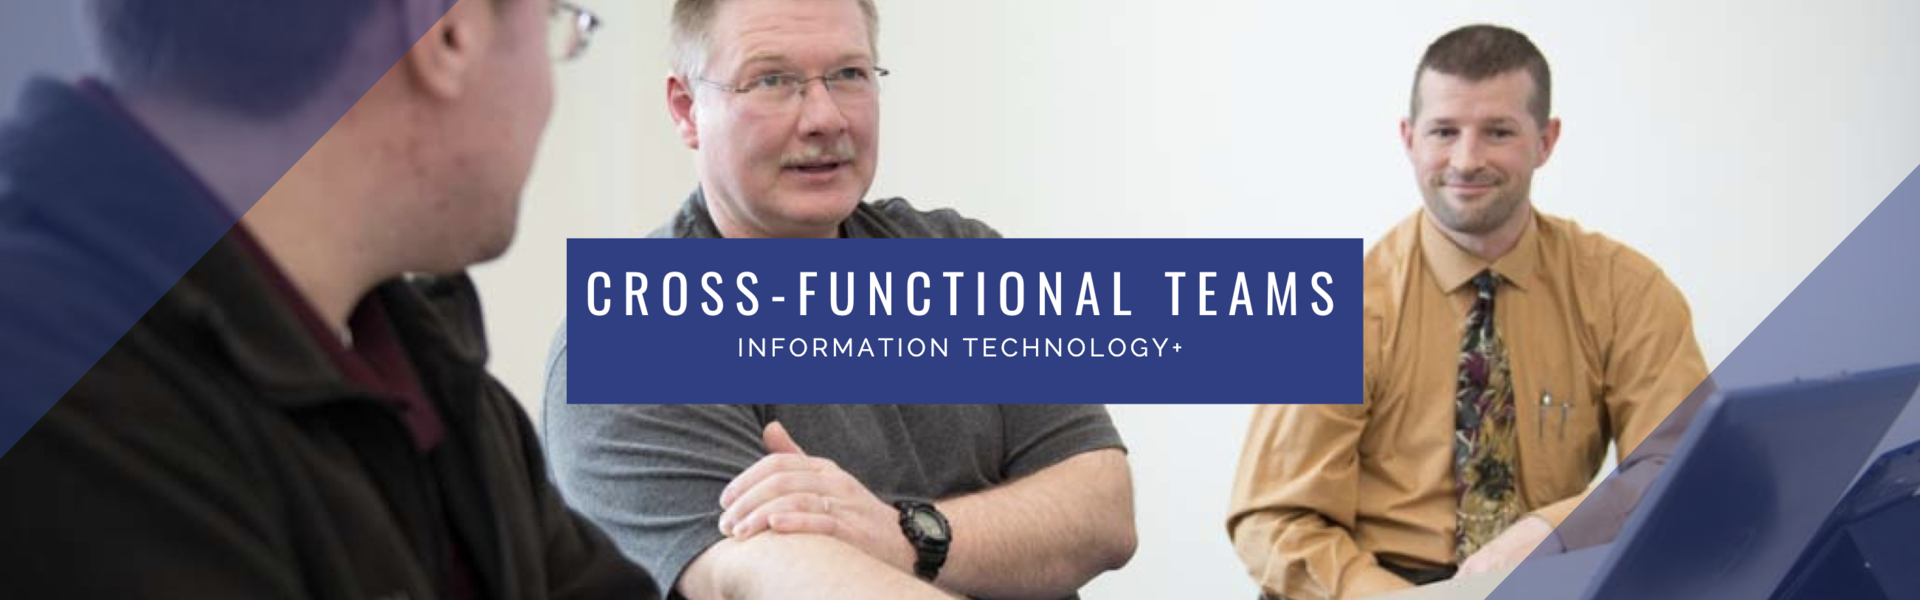 LTS Cross functional teams information technology+